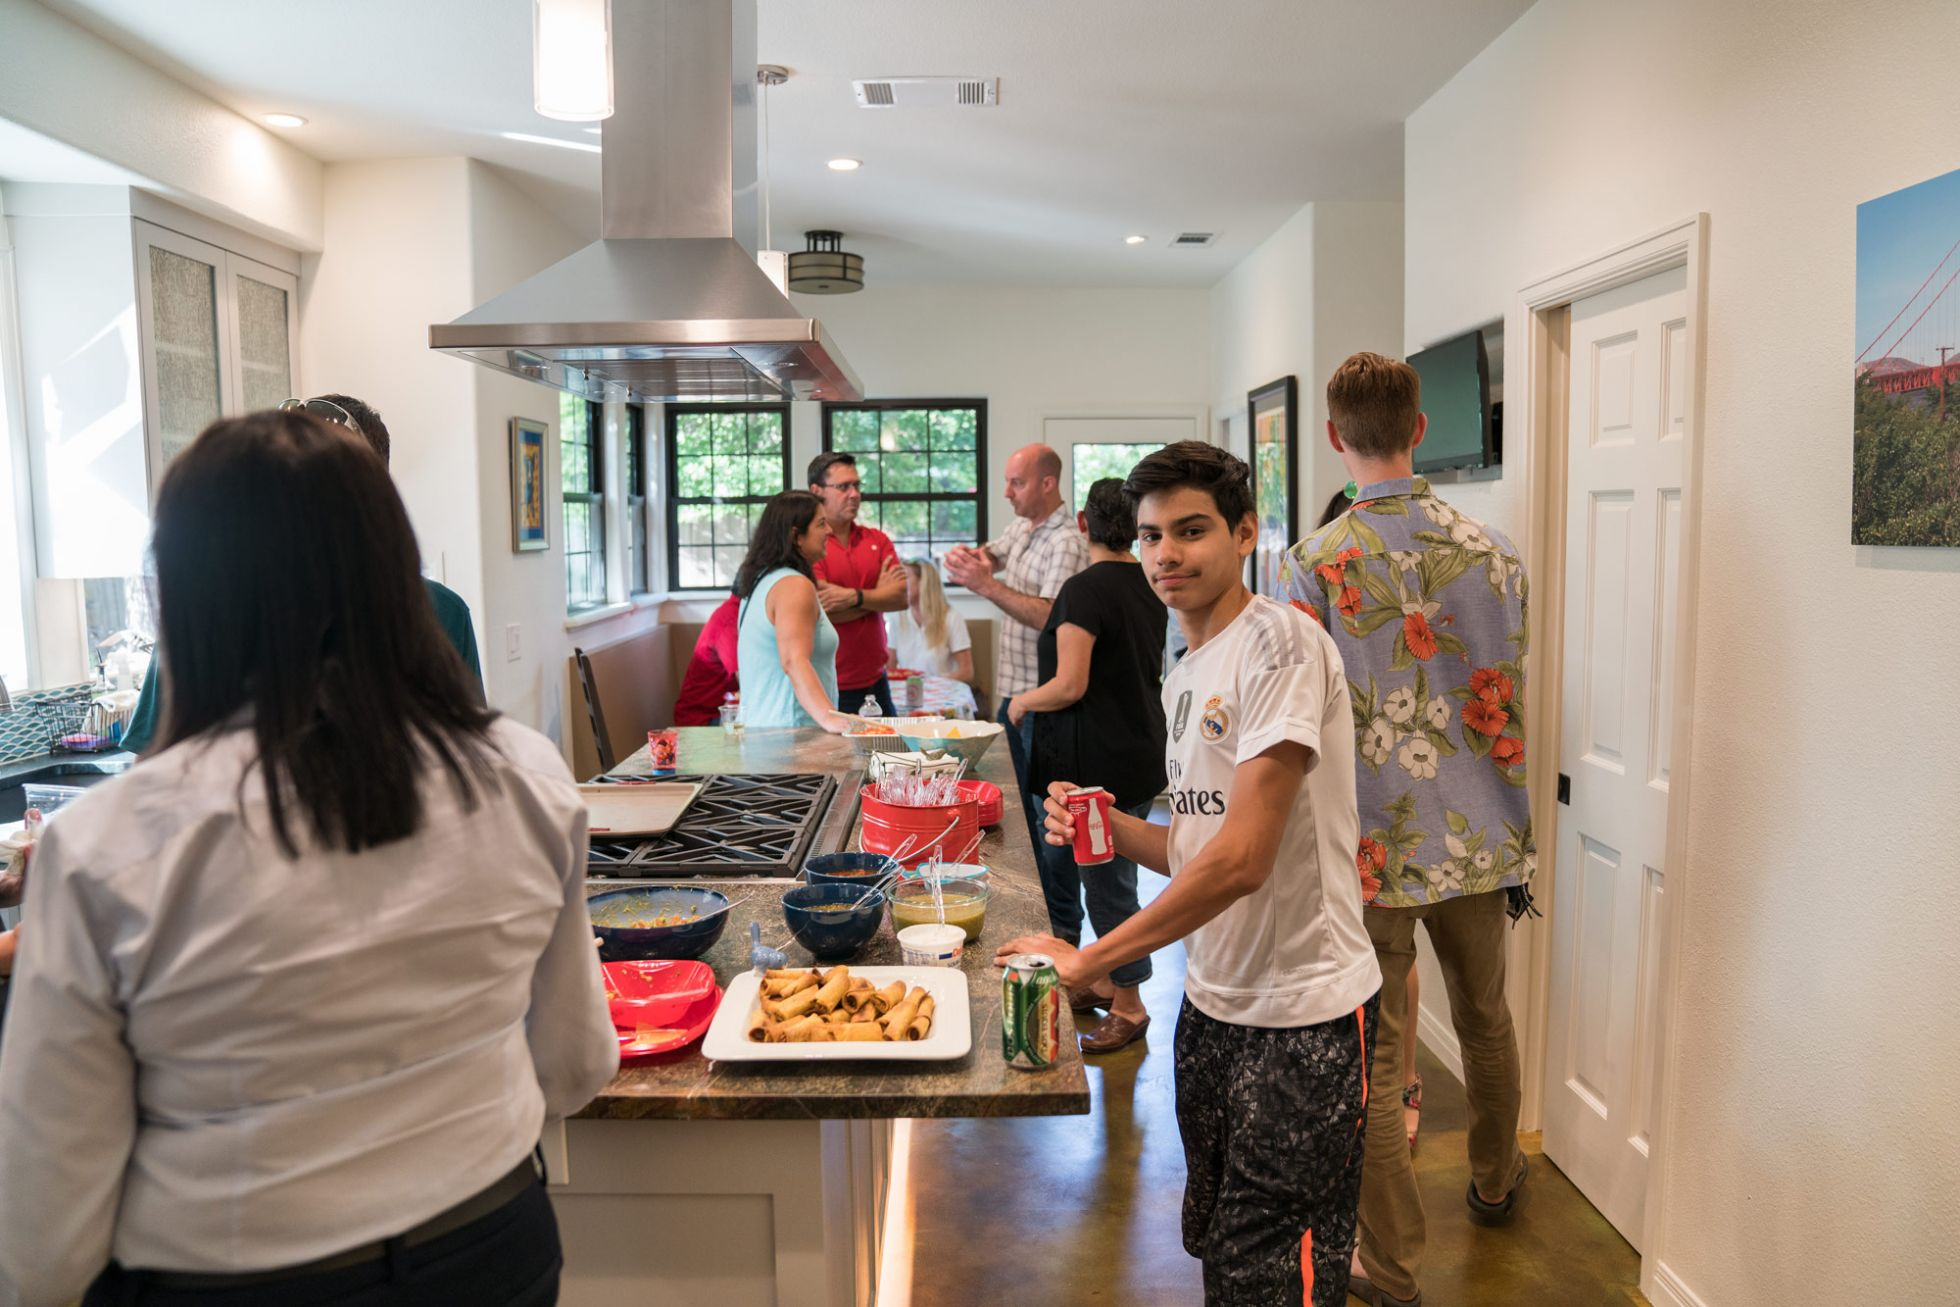 Home party in kitchen